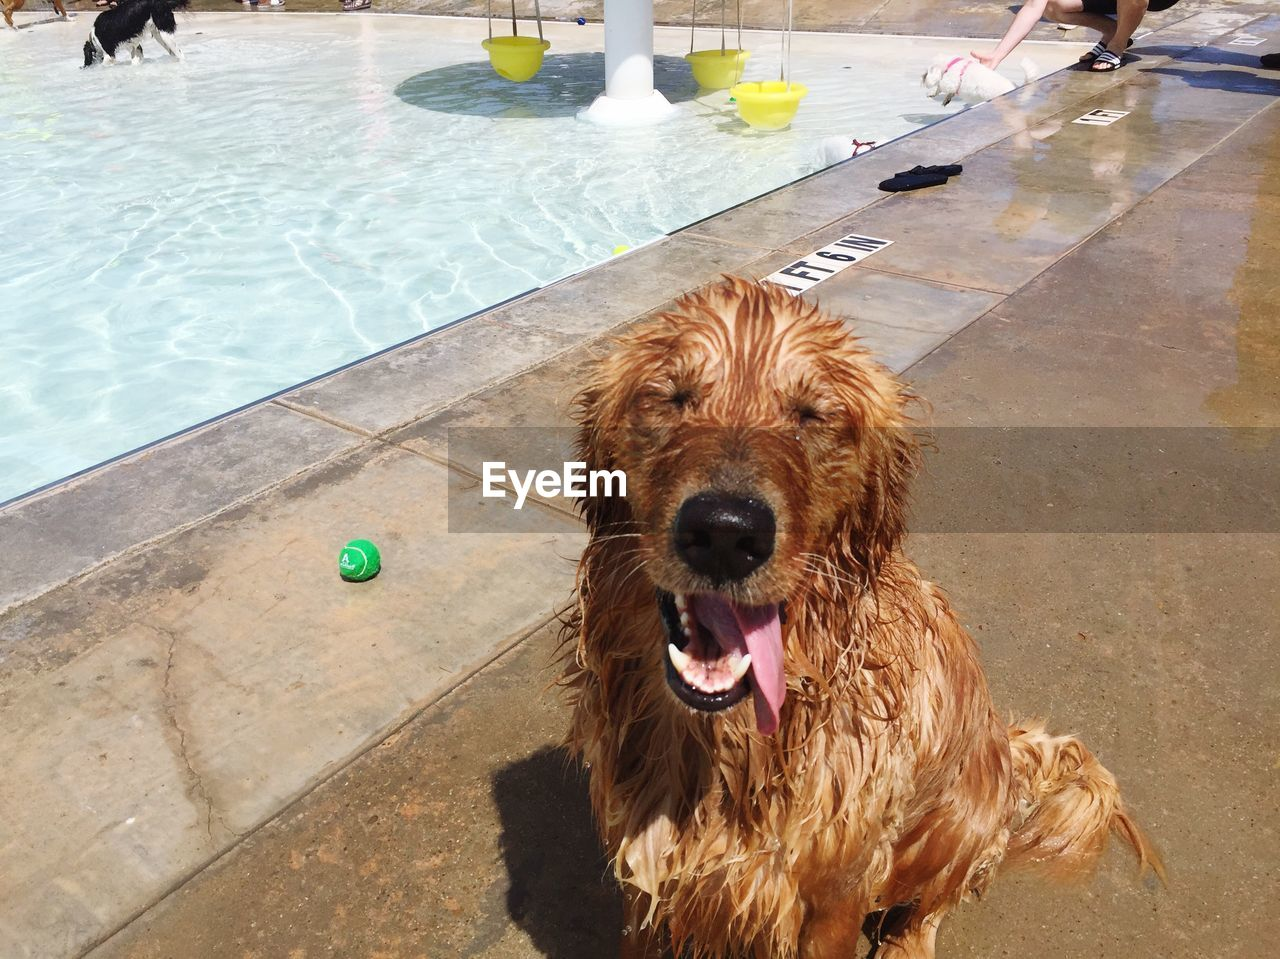 canine, dog, one animal, vertebrate, animal themes, water, pets, domestic, mammal, animal, domestic animals, swimming pool, pool, day, high angle view, portrait, wet, looking at camera, nature, mouth open, animal head